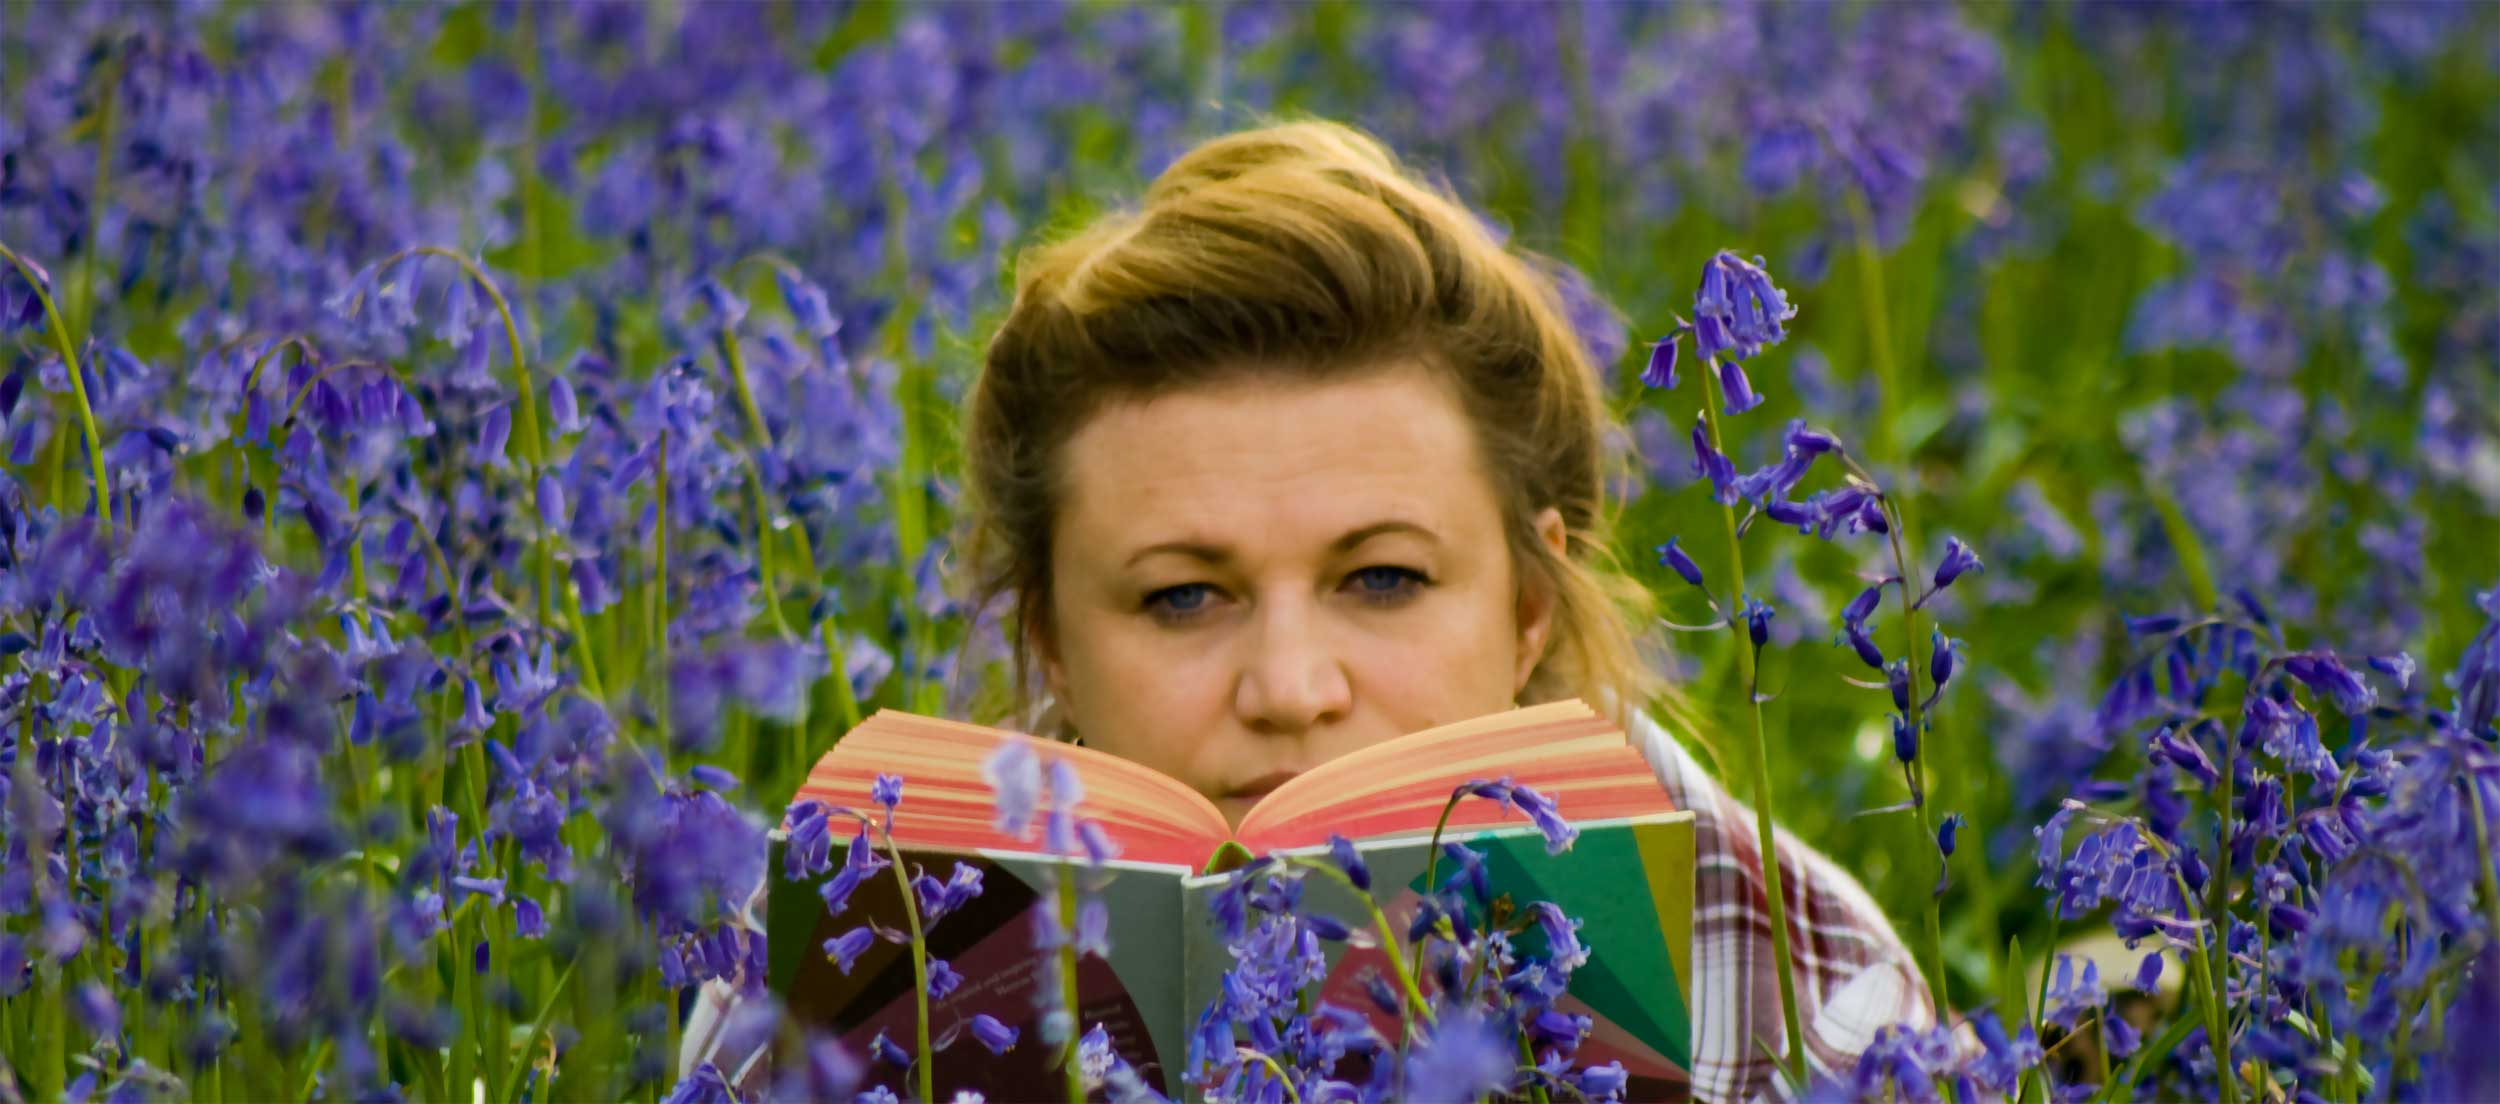 Juanita reading in the bluebell wood